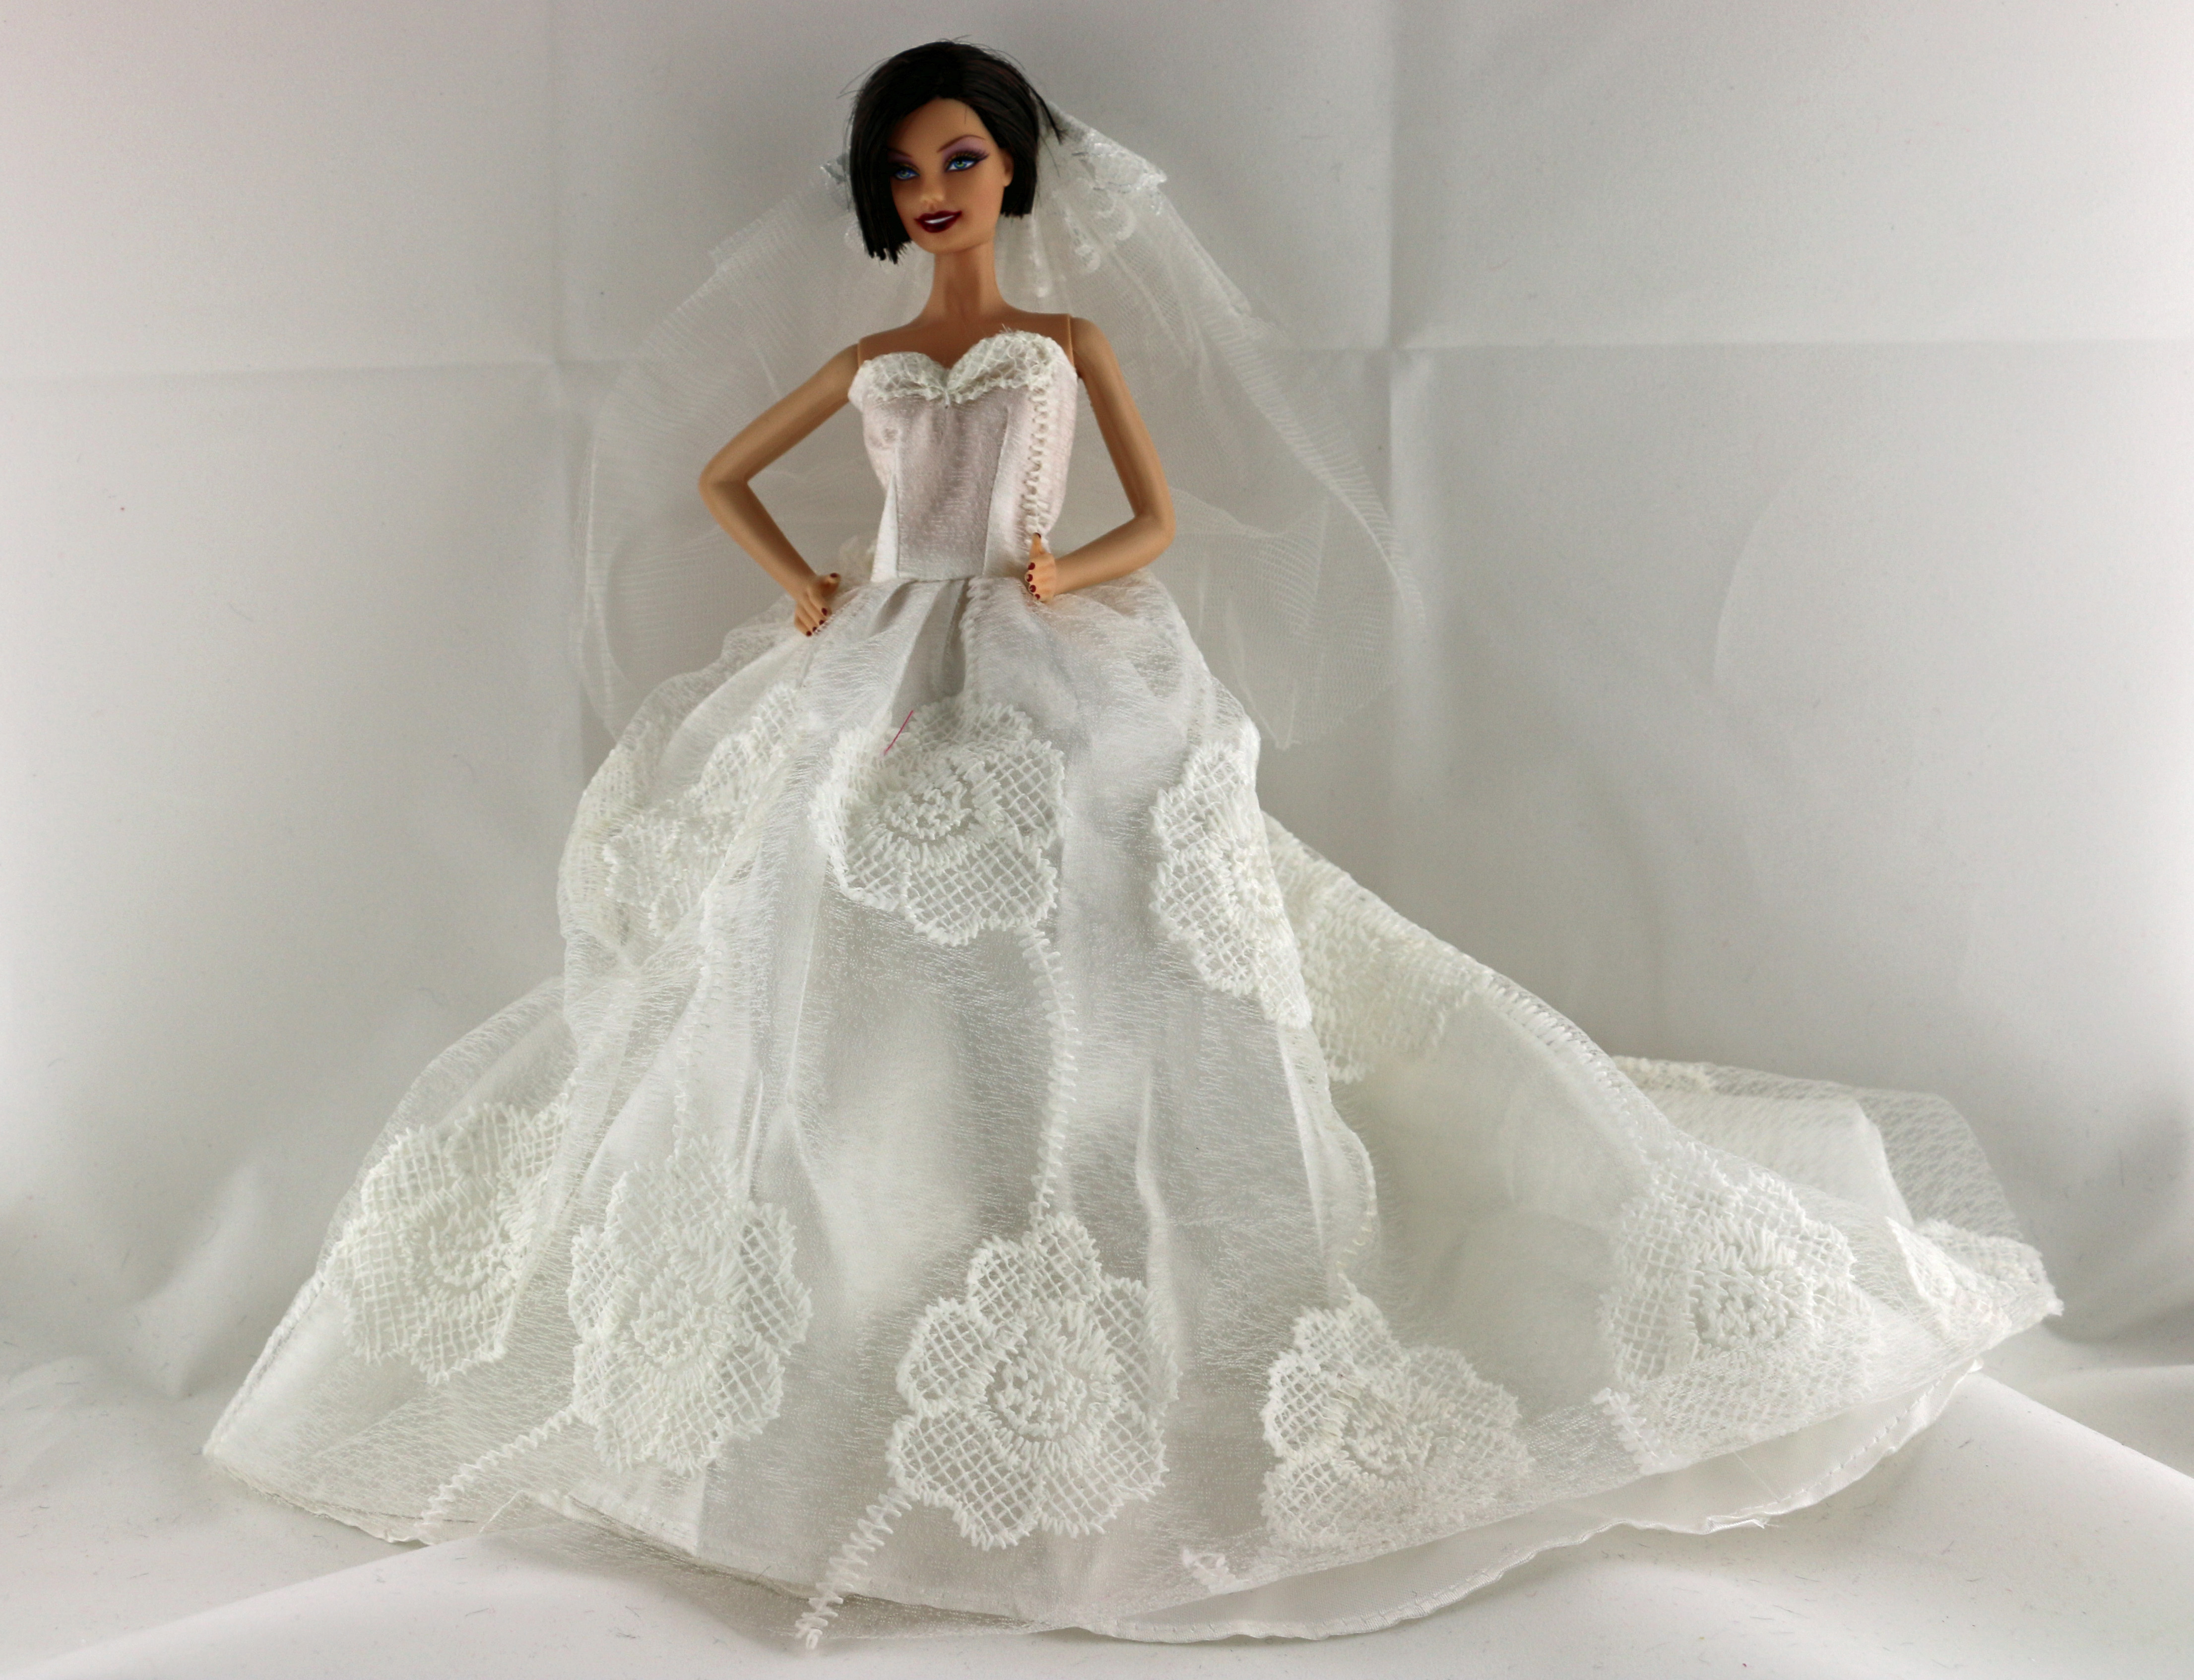 White floral wedding dress with a long train with veil and for Wedding dress with long gloves